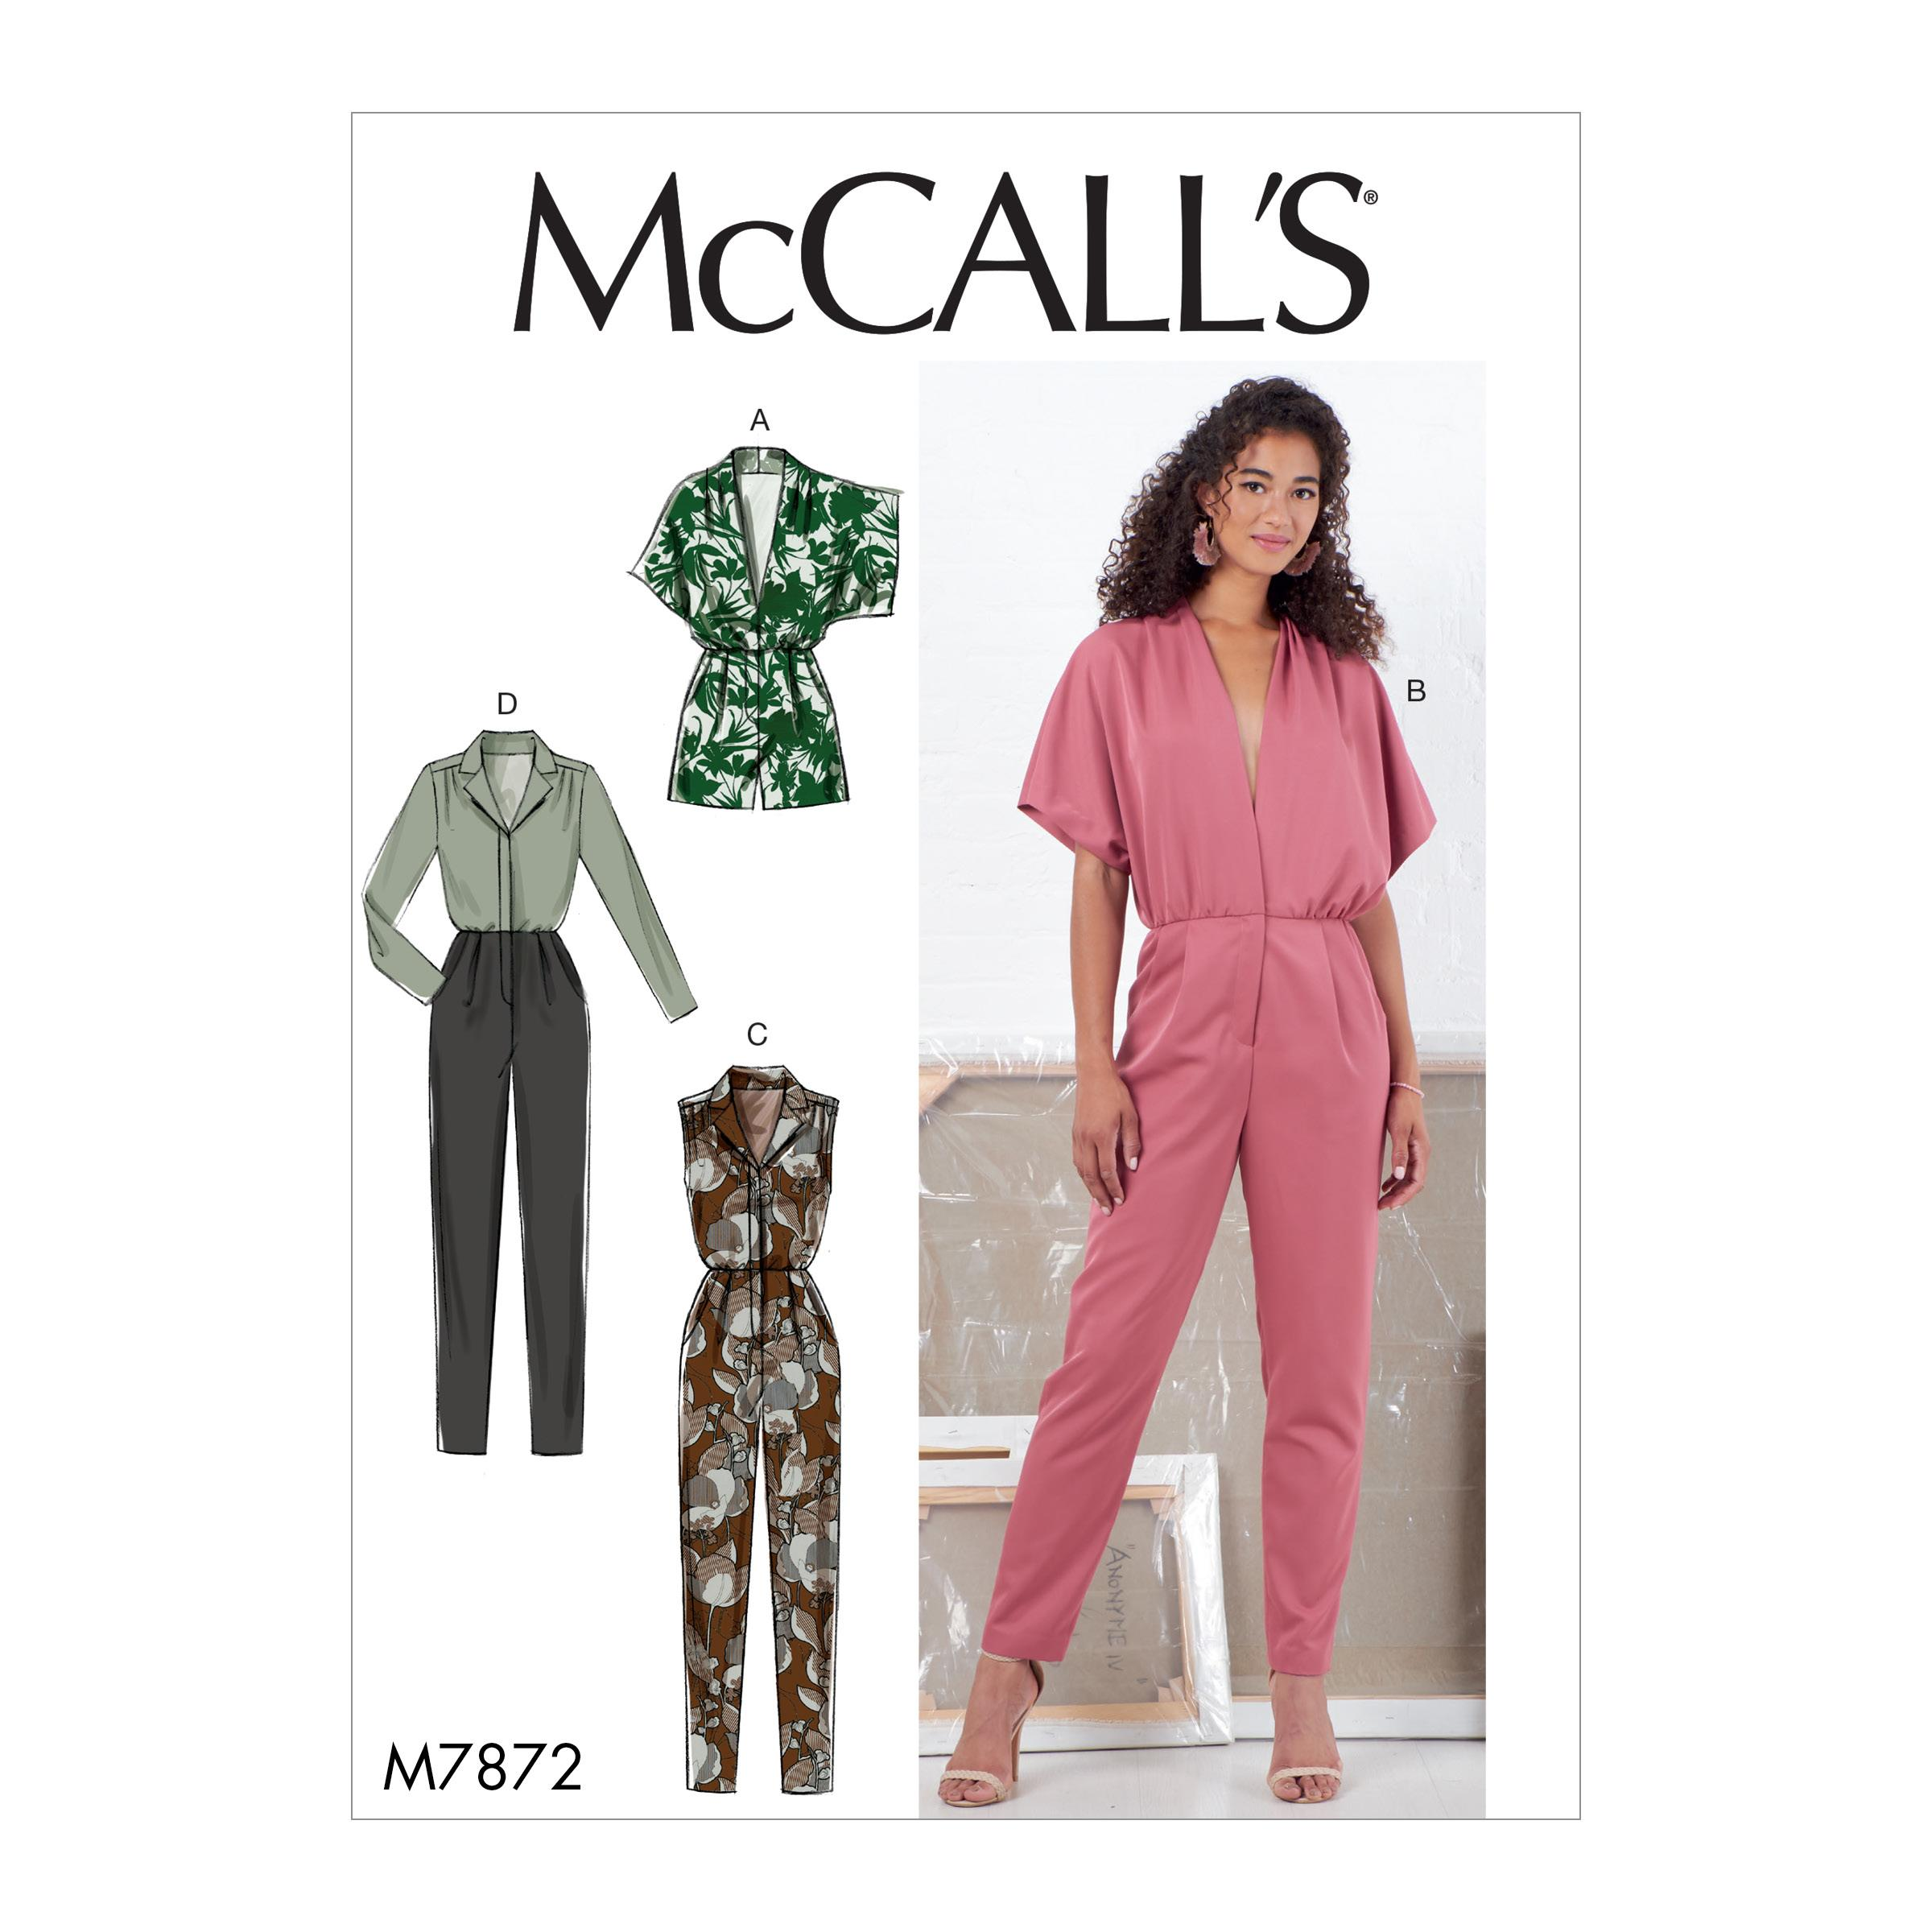 McCalls M7872 Misses Pants, Jumpsuits & Shorts